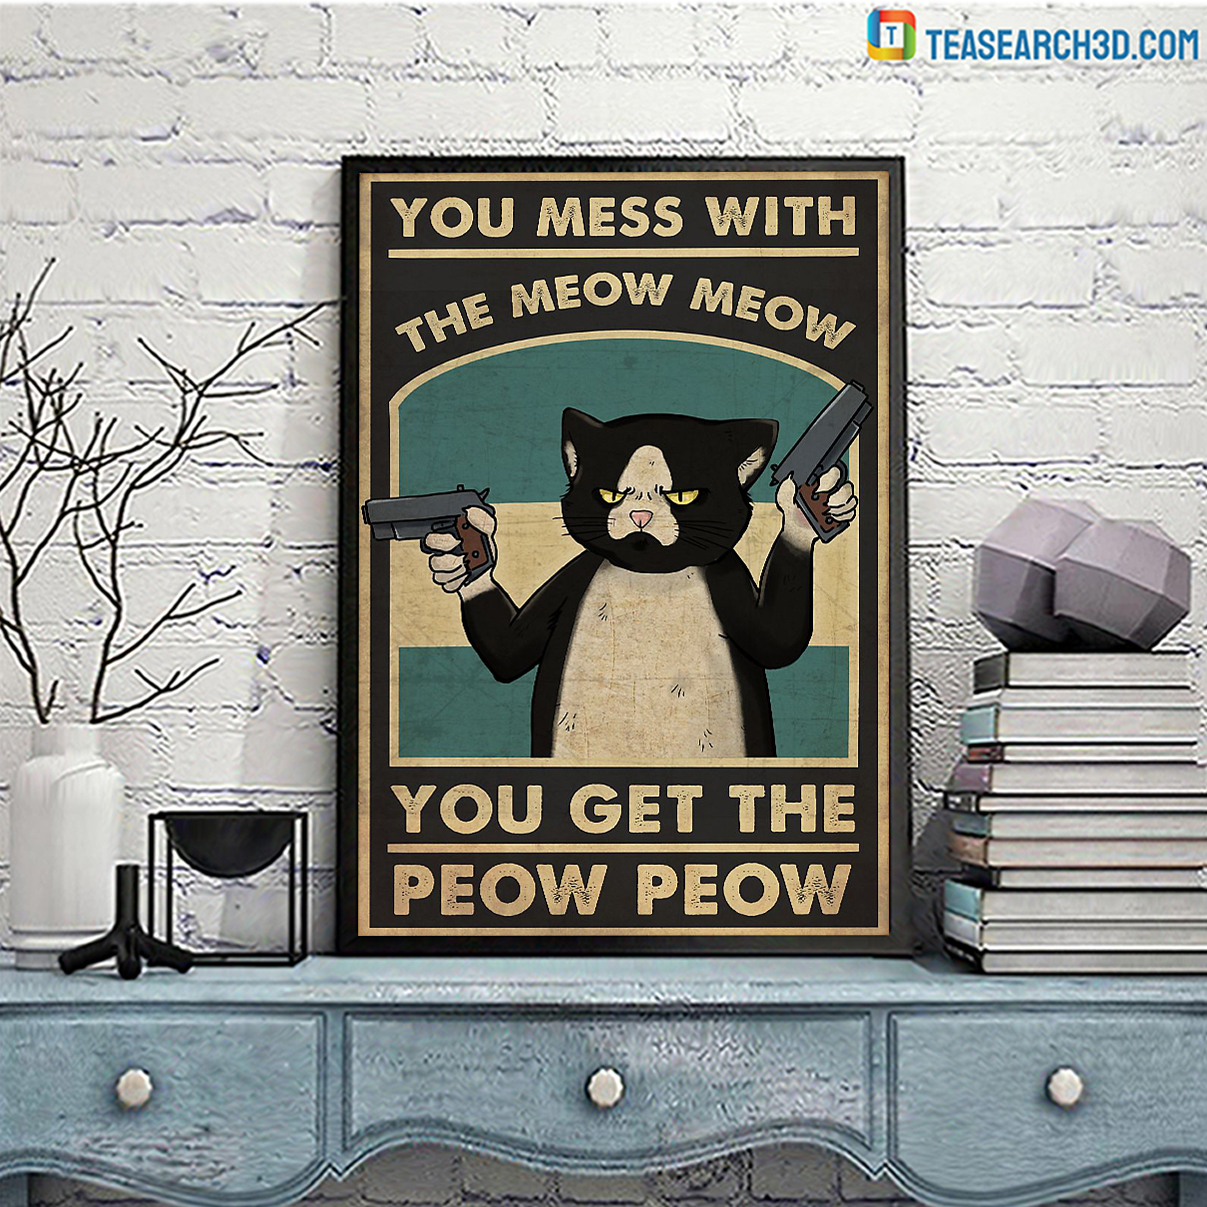 You mess with the meow meow you get the peow peow poster A2